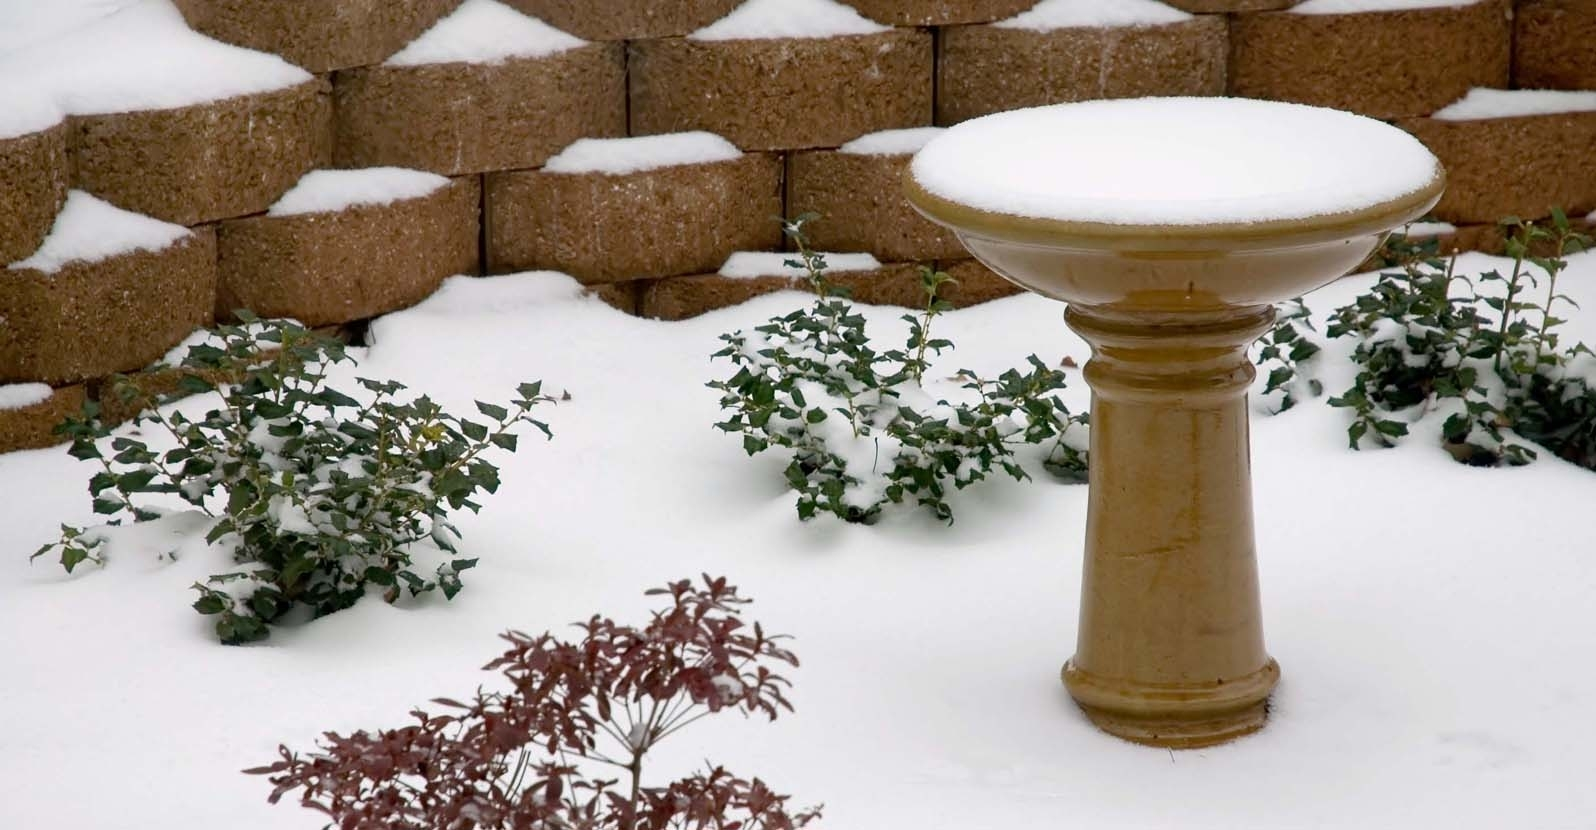 How to Winterize a Bird Bath